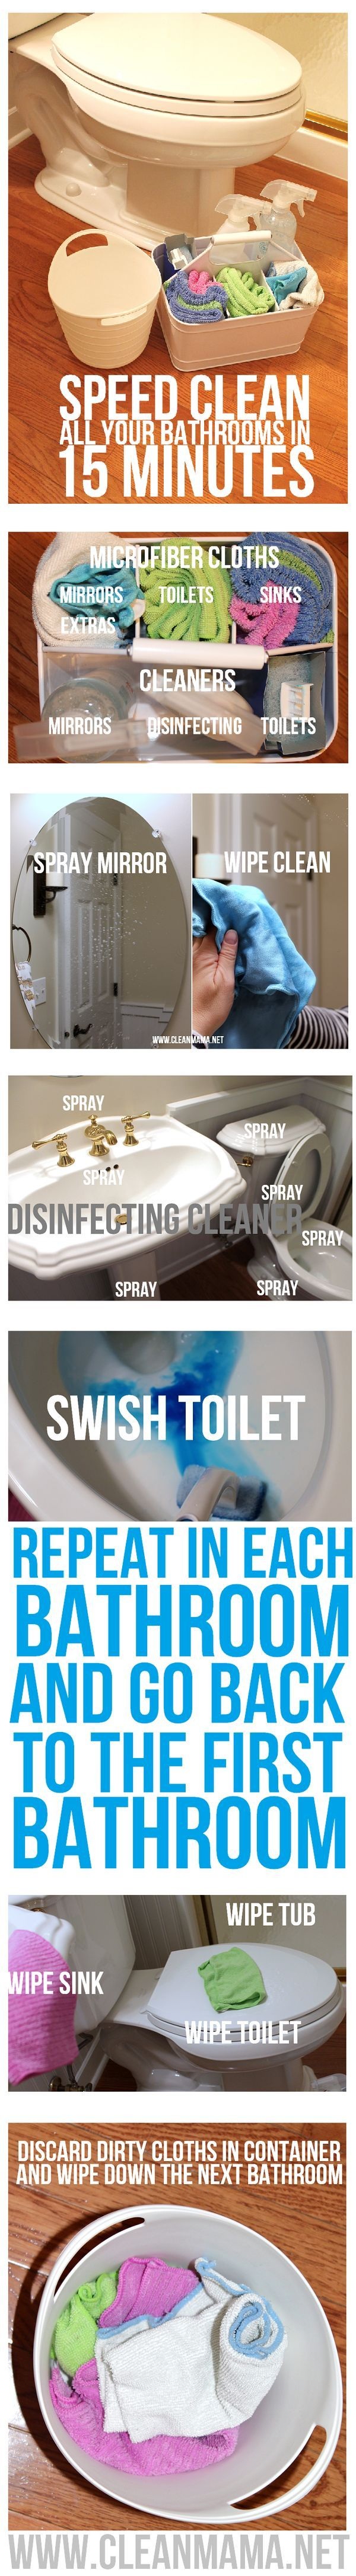 Best 20 Bathroom Cleaning Ideas On Pinterest Bathroom Cleaning Tips Batht